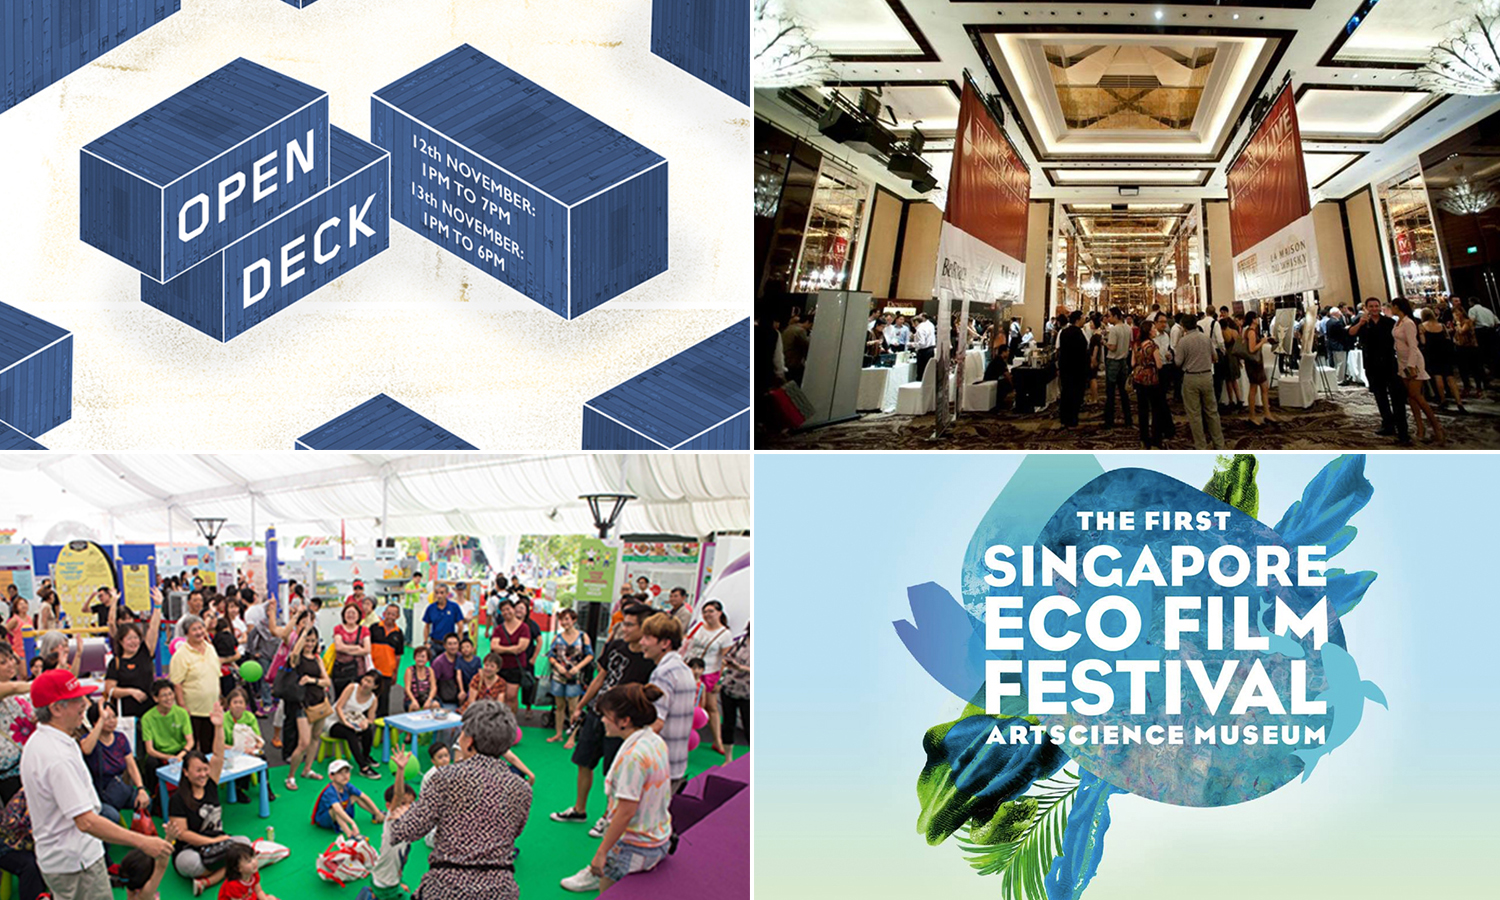 events-in-singapore-this-weekend-cover